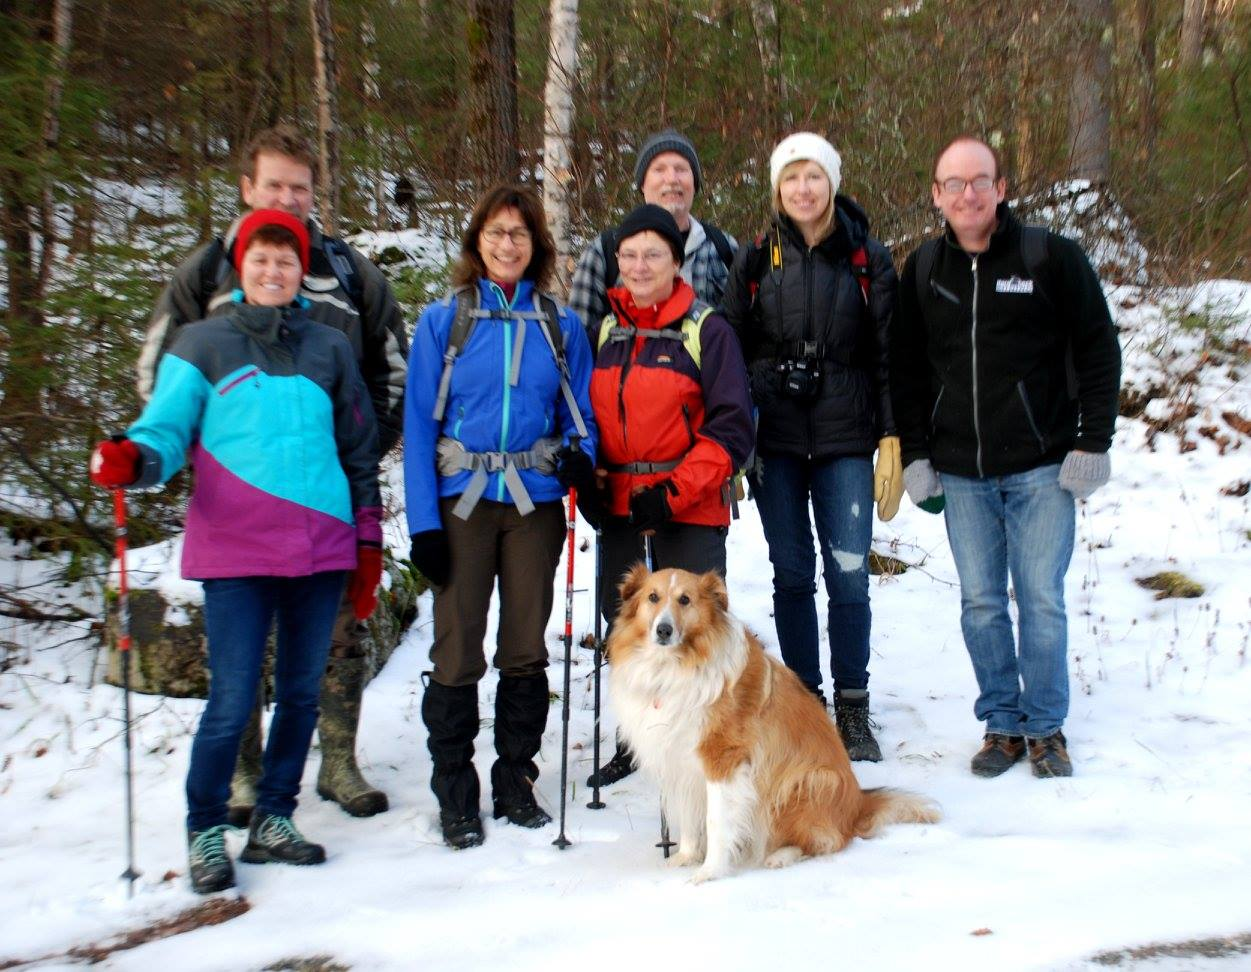 December 2015 Hike up Beaver Mountain